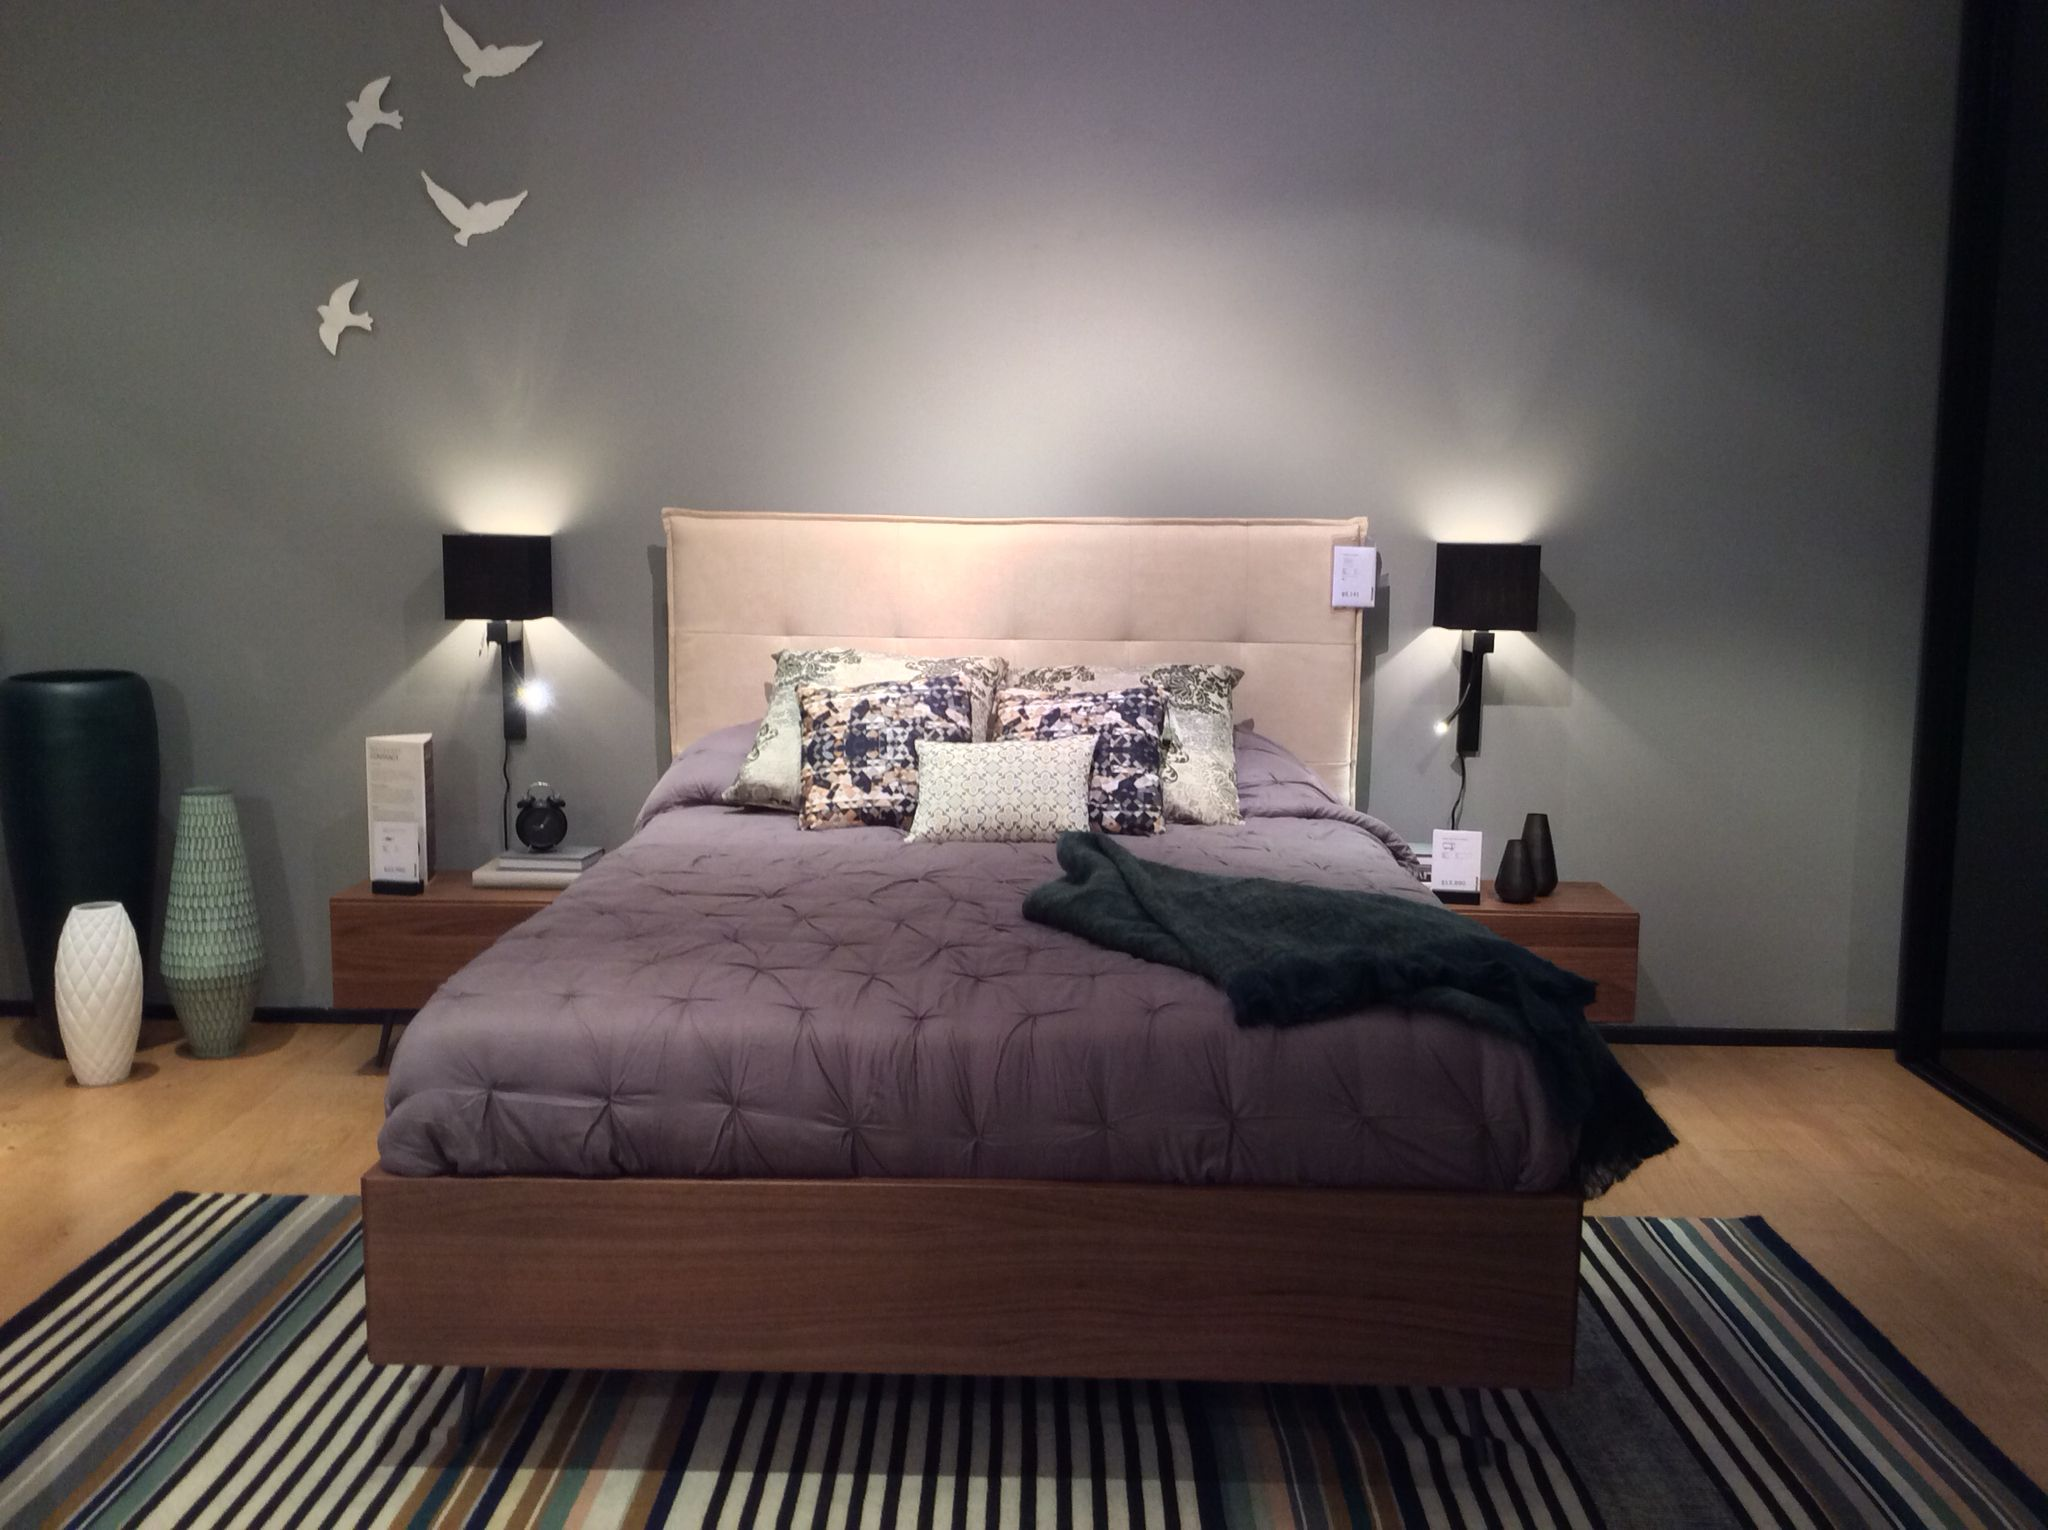 boconcept lugano bed bedroom pinterest bett schlafzimmer und badezimmer. Black Bedroom Furniture Sets. Home Design Ideas